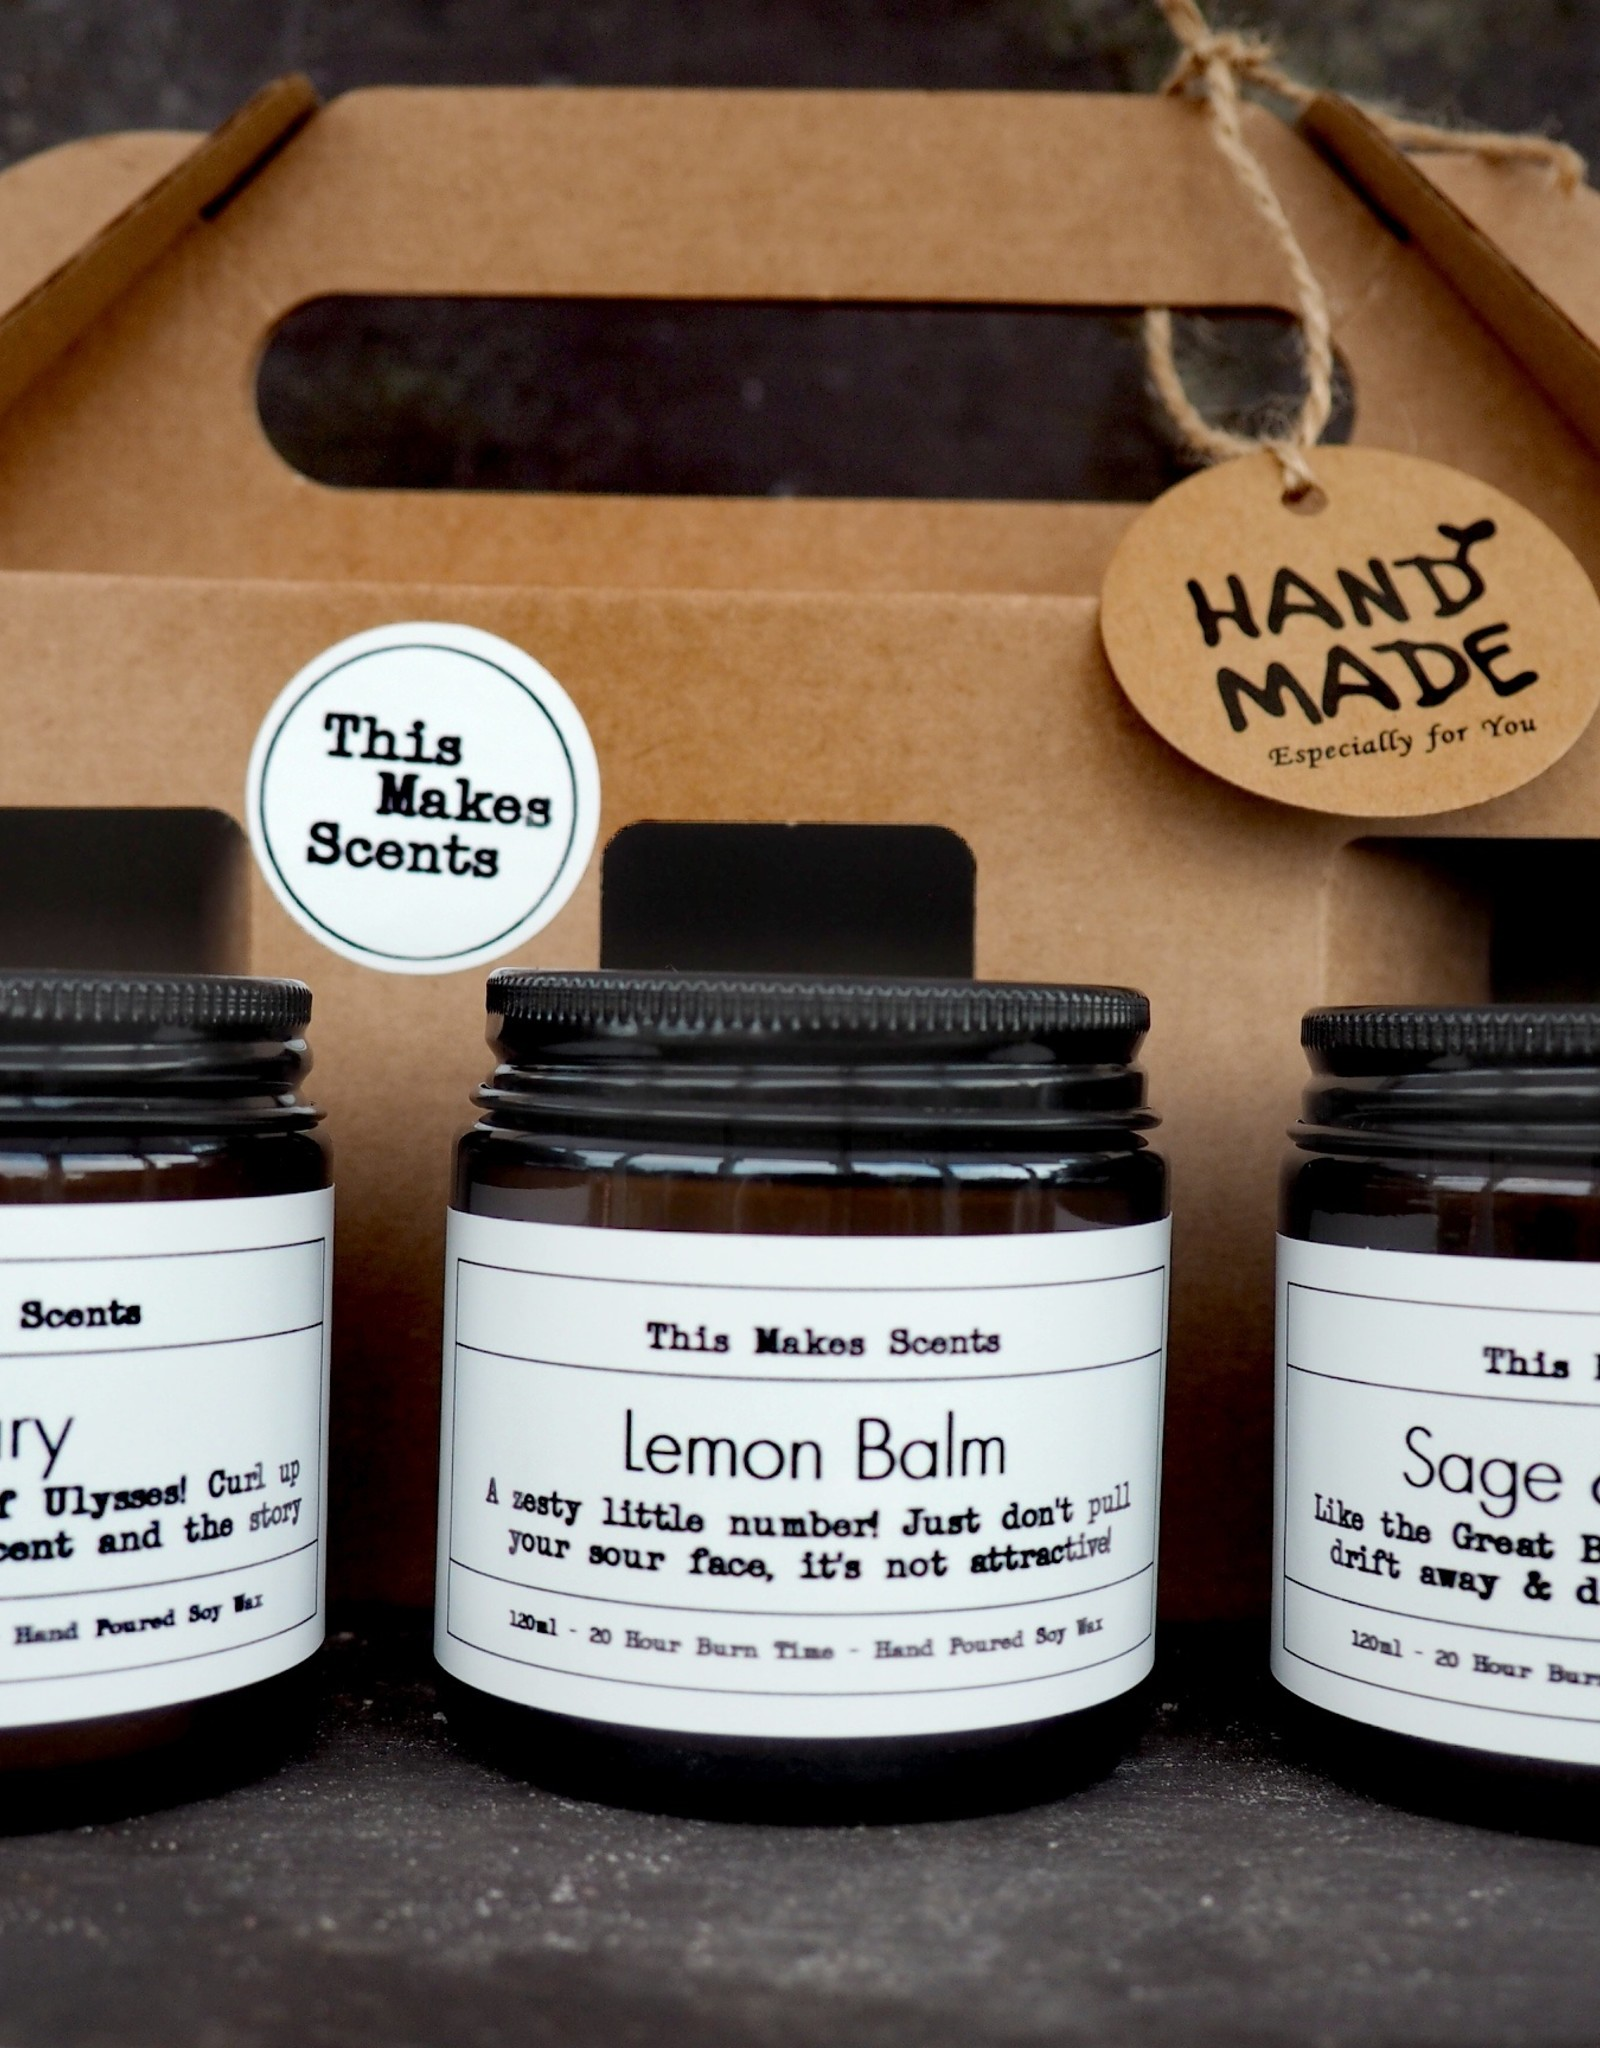 This Makes Scents Home Office Collection Gift Set